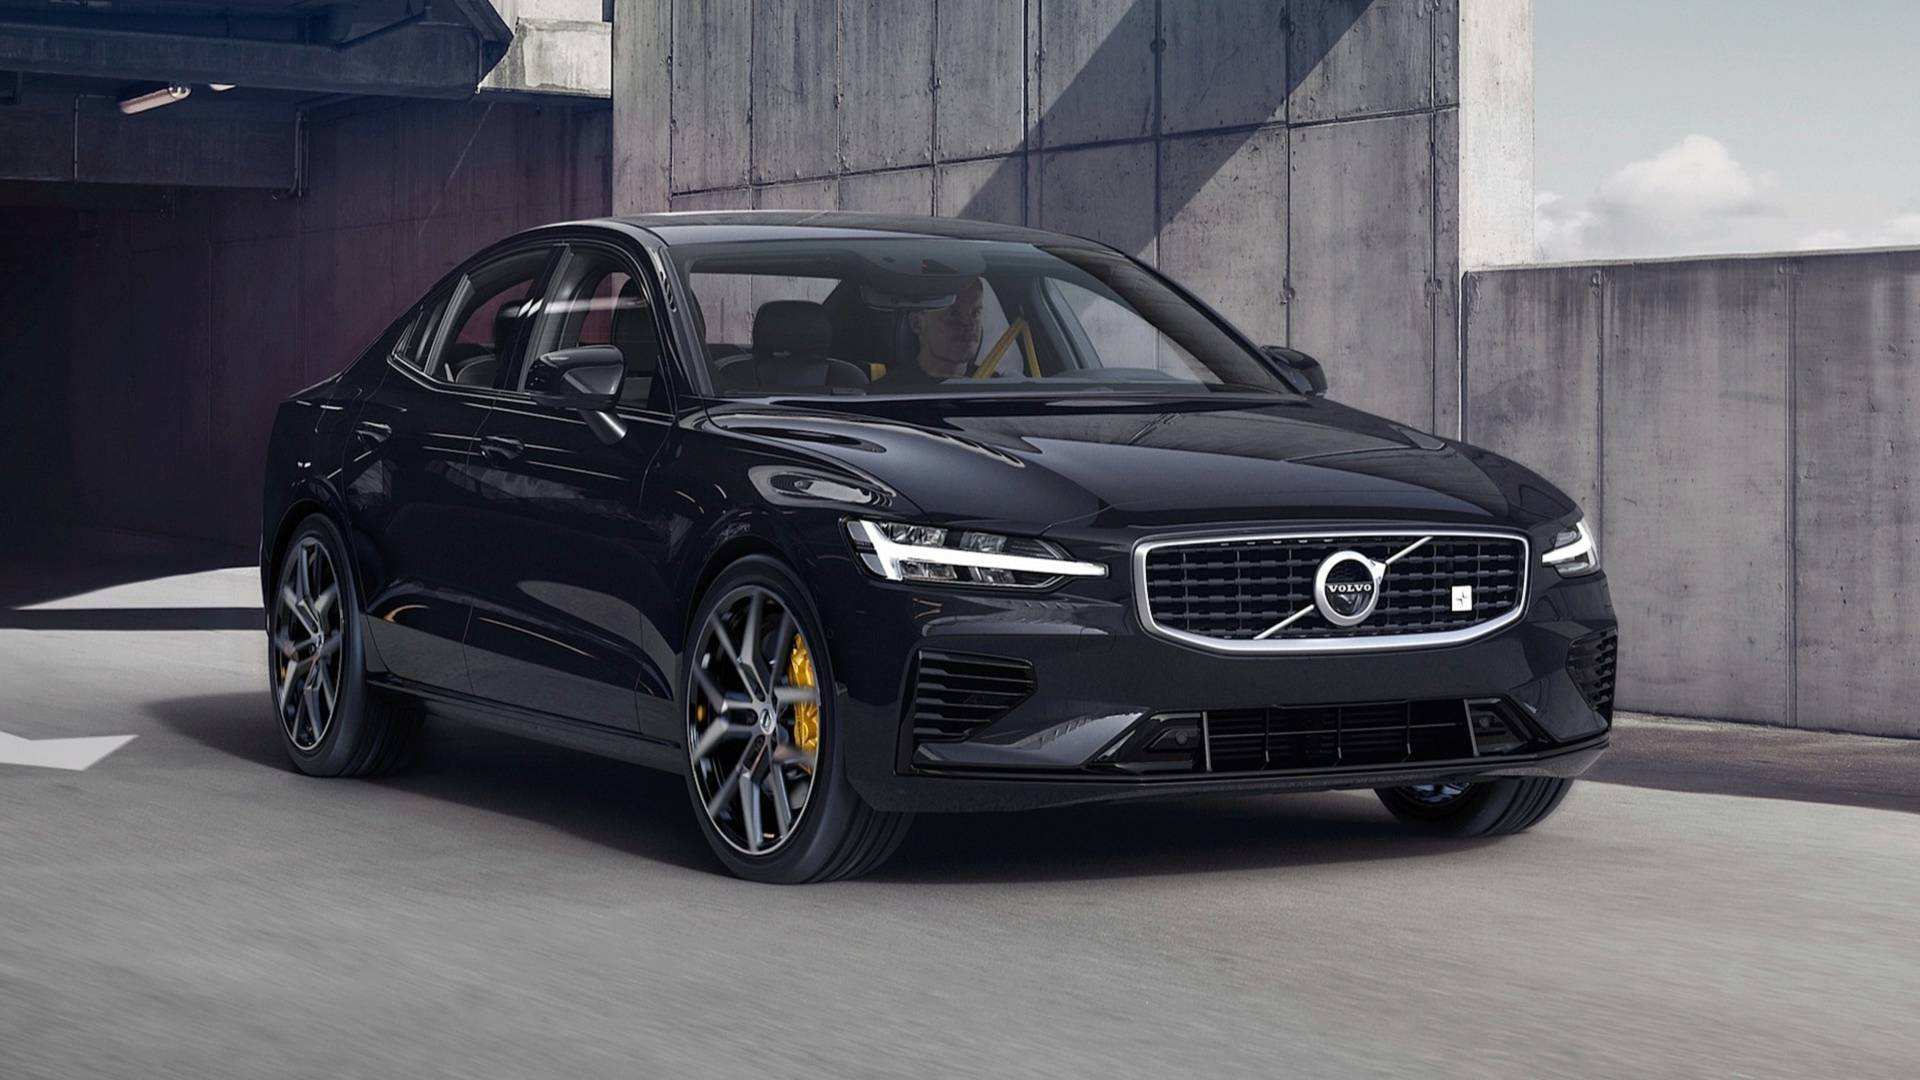 87 Great Volvo S60 Polestar 2020 Spesification for Volvo S60 Polestar 2020